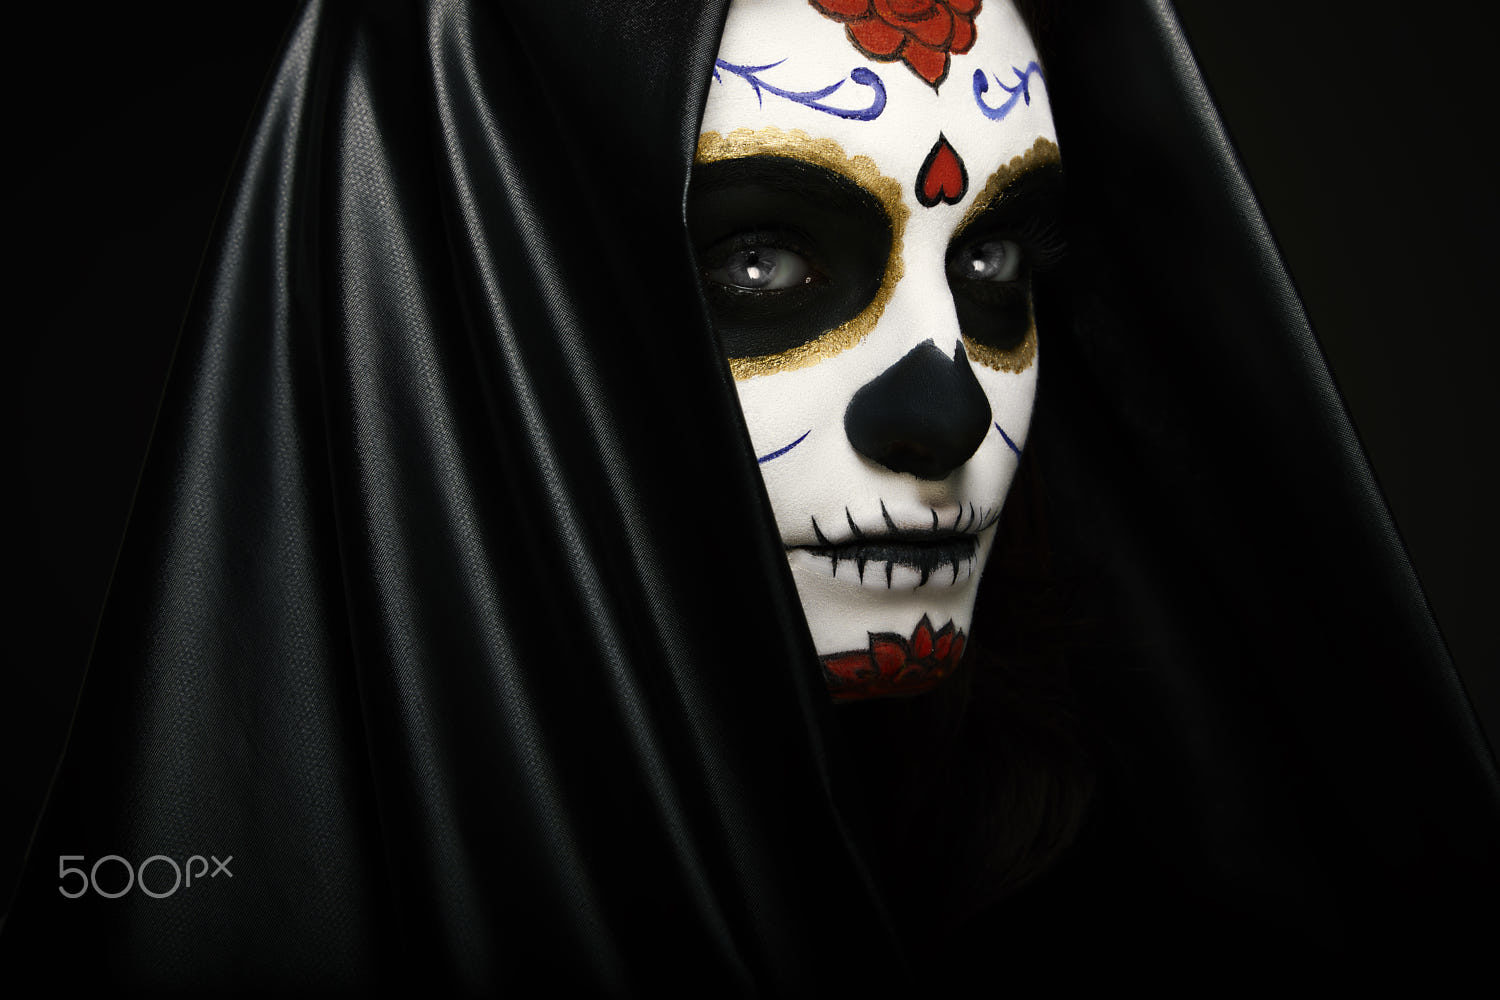 Stunning pictures of Day of the Dead on 500px